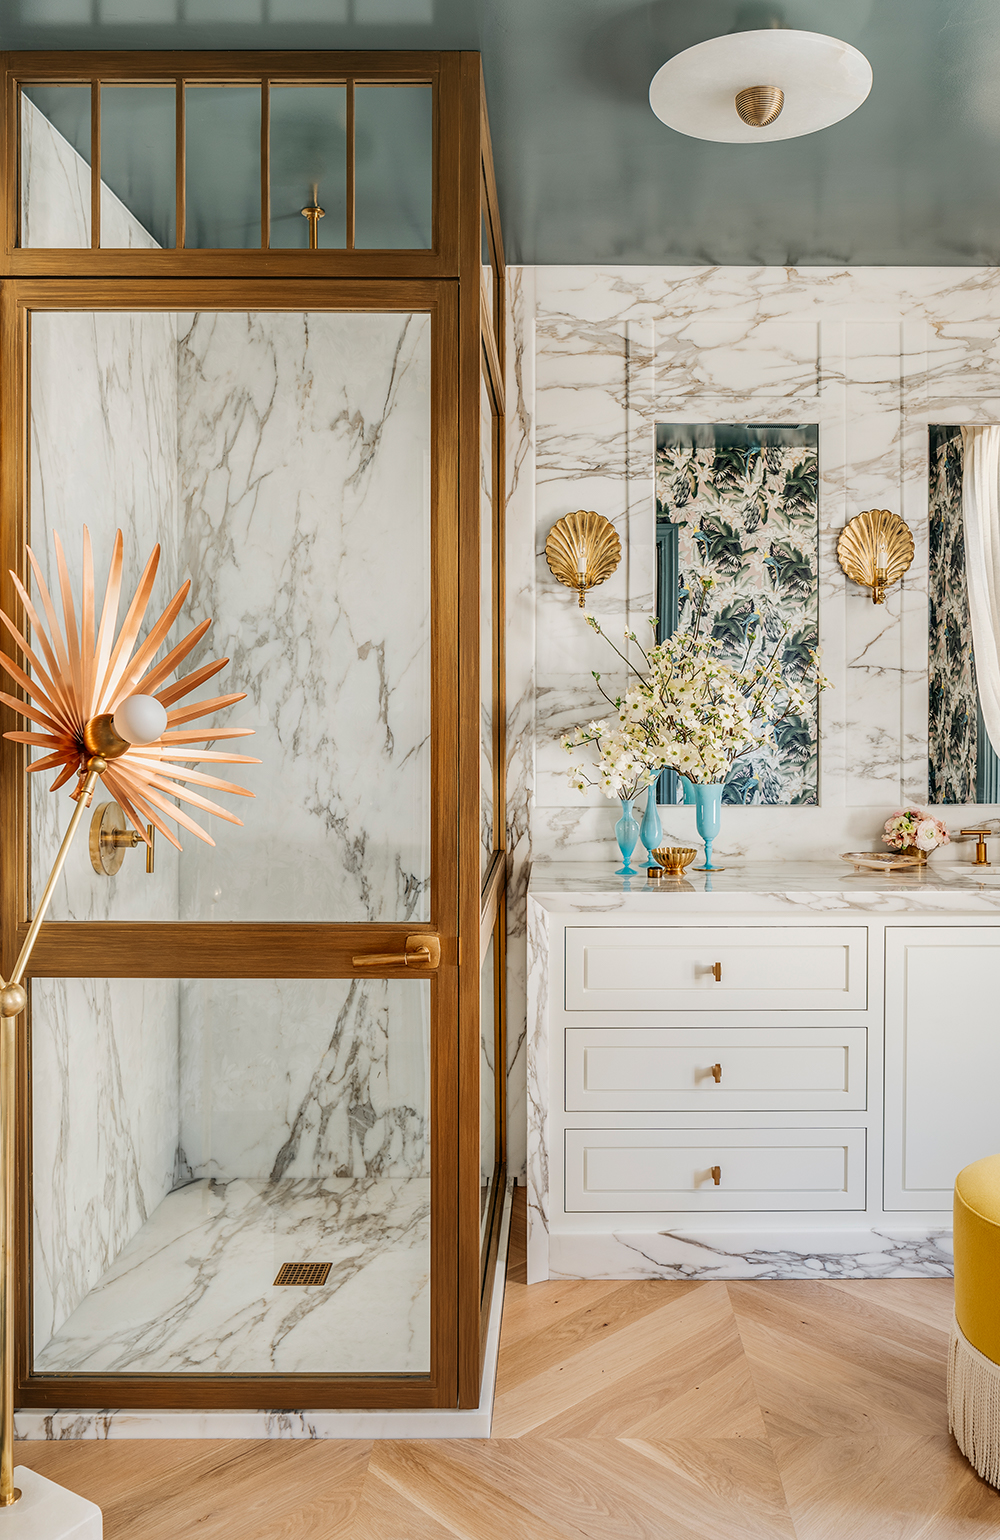 L'Espace Tranquille by Julie Rootes Interiors  Historic Parisian bathrooms provided the inspiration for an Art Deco-style bathroom from Julie Rootes Interiors. The light switches are from Forbes & Lomax, and the sconces are from Soane Britain, while the wallcovering and fringe are from Kneedler|Fauchère.